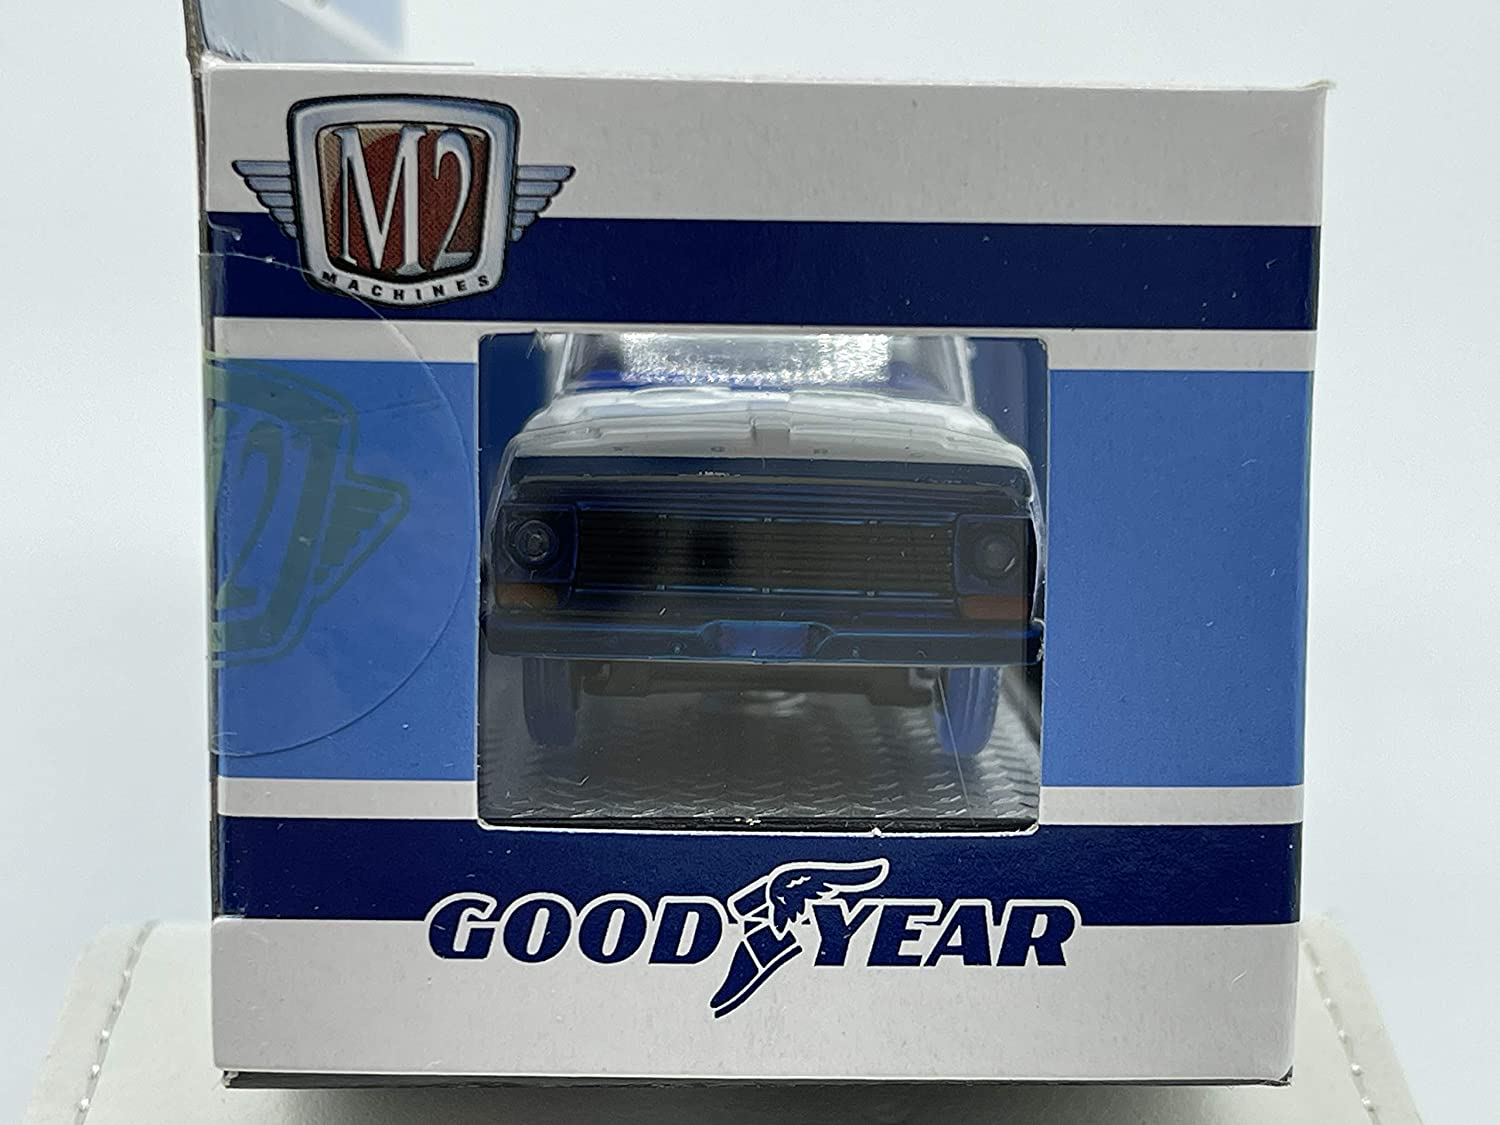 M2 Machines by M2 Collectible 1 of 750 Worldwide Chase Car with Gold or Special Wheels /& Unique Design Good Year 1967 Ford F-100 Custom Cab 1:64 Scale WMTS09 19-09 White//Blue